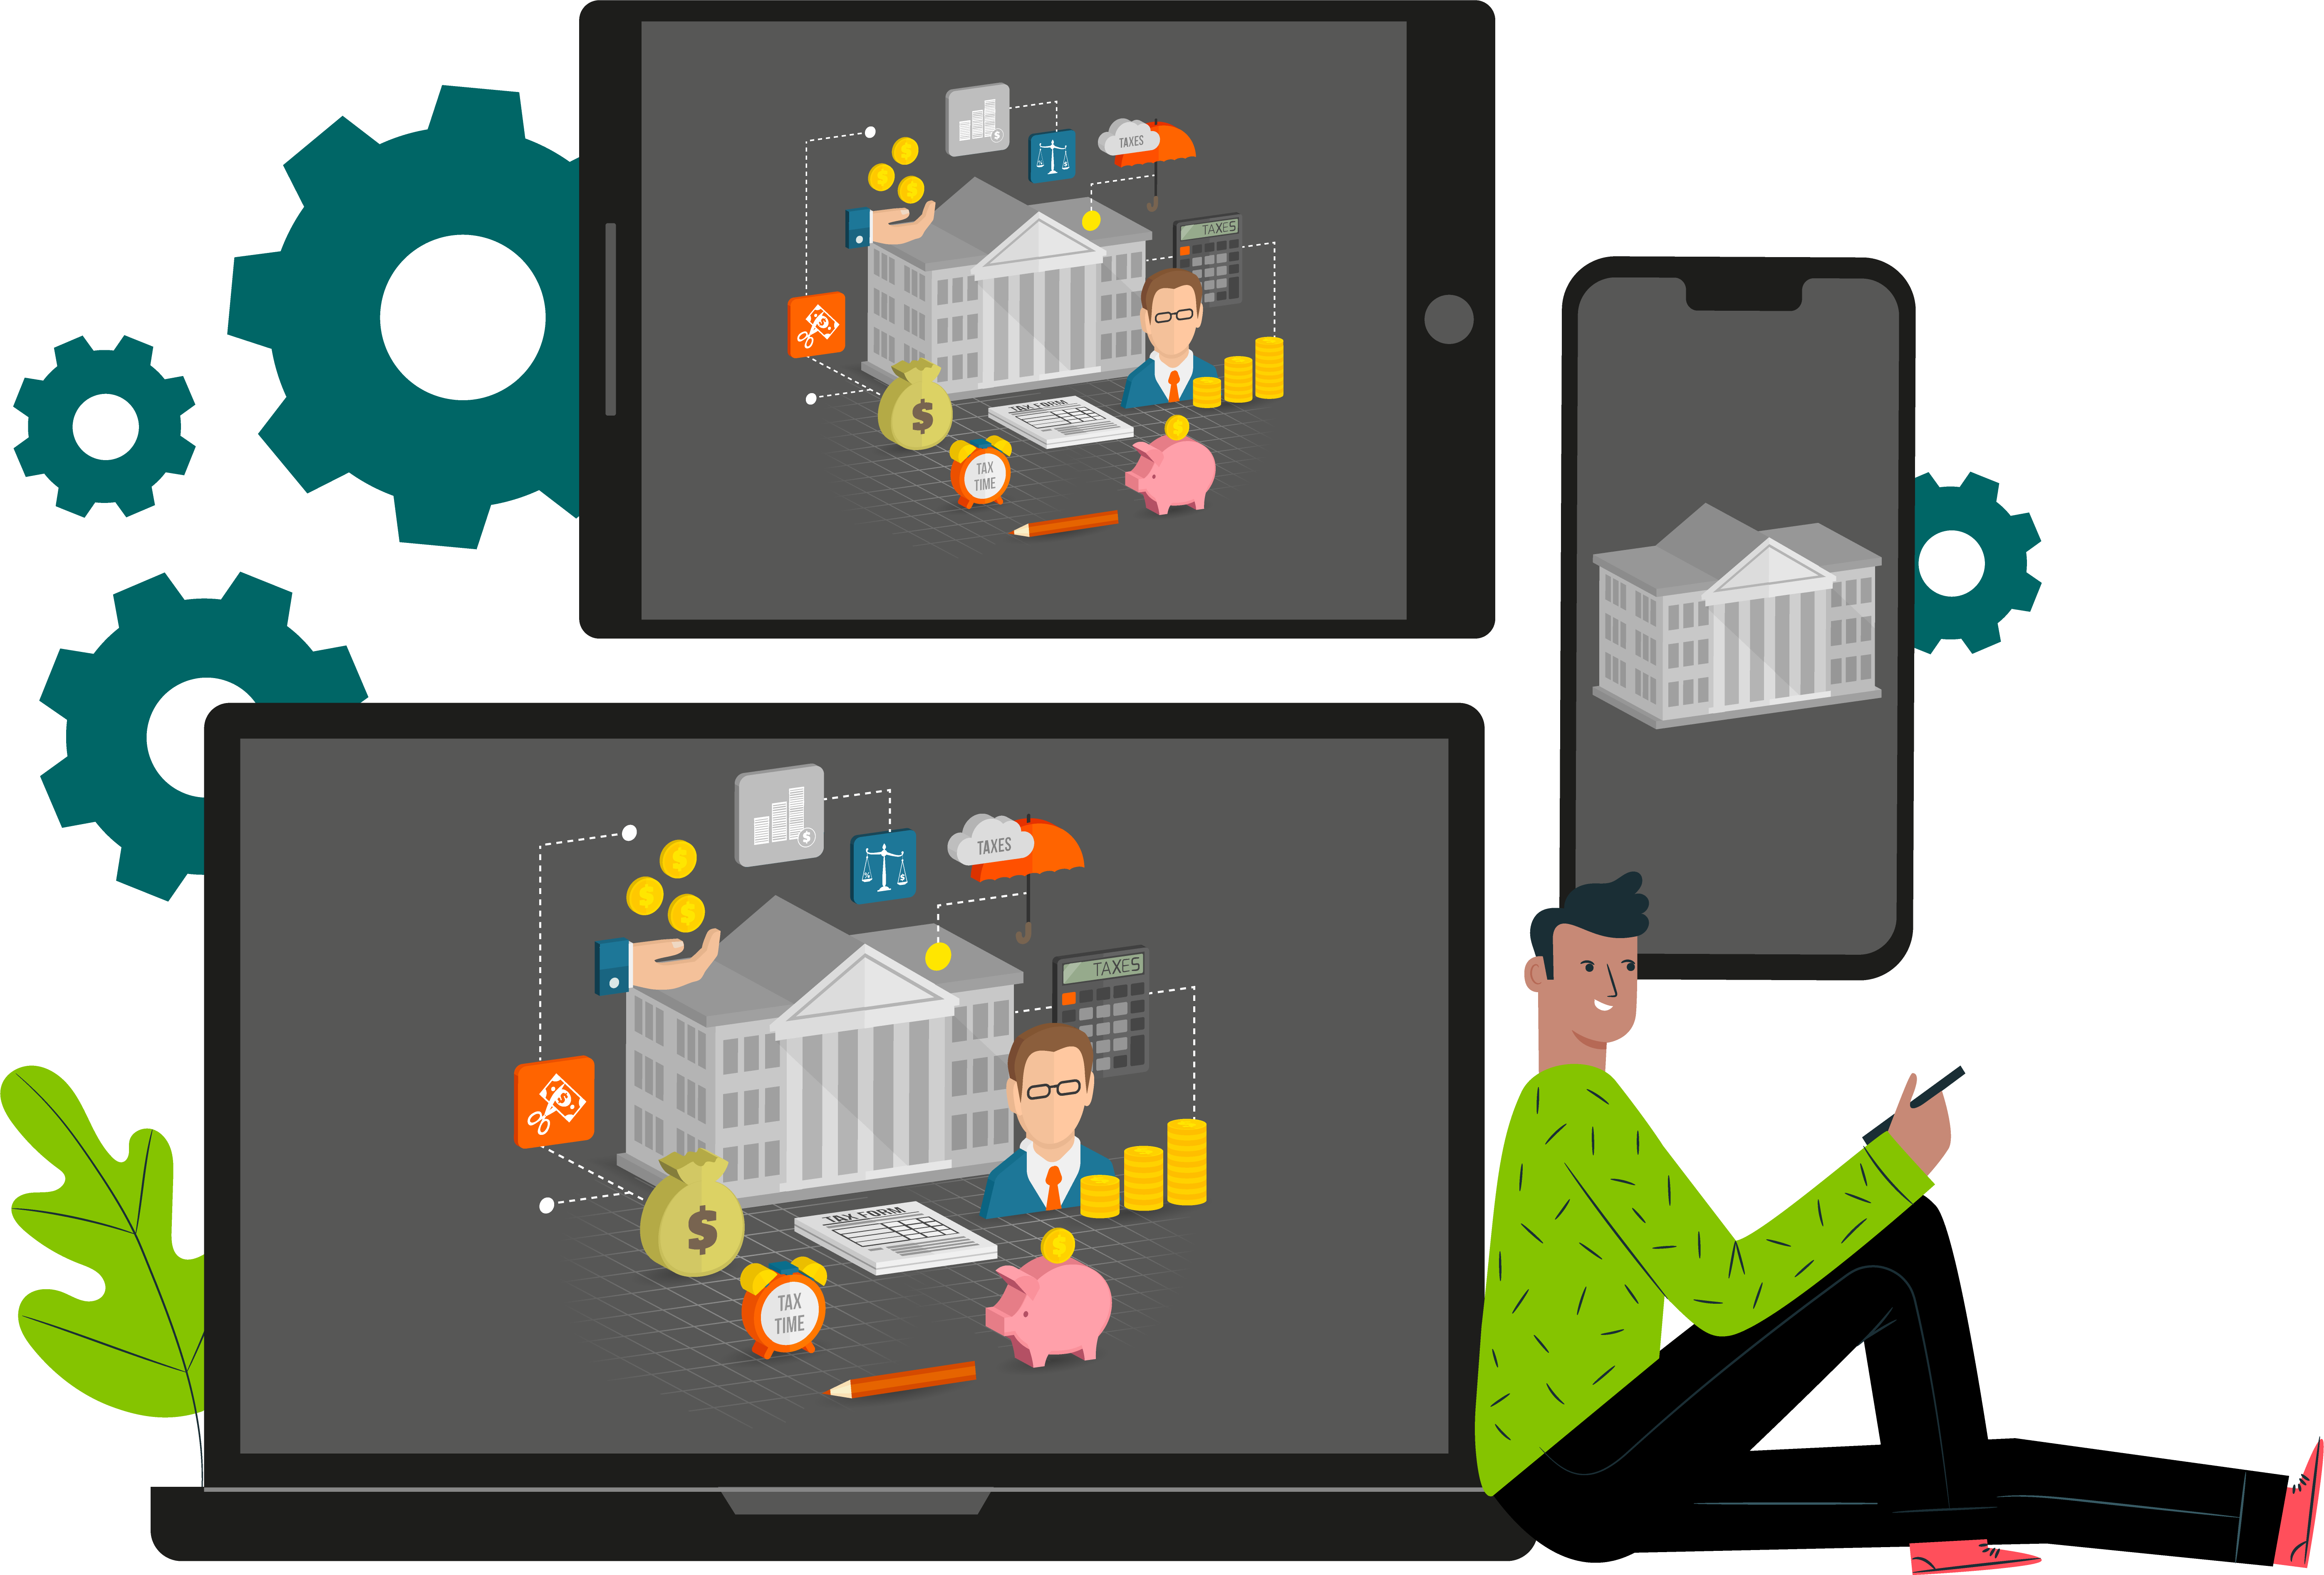 Laptop, tablet and smartphone showing a government building. This illustrates the digitalization of the state.